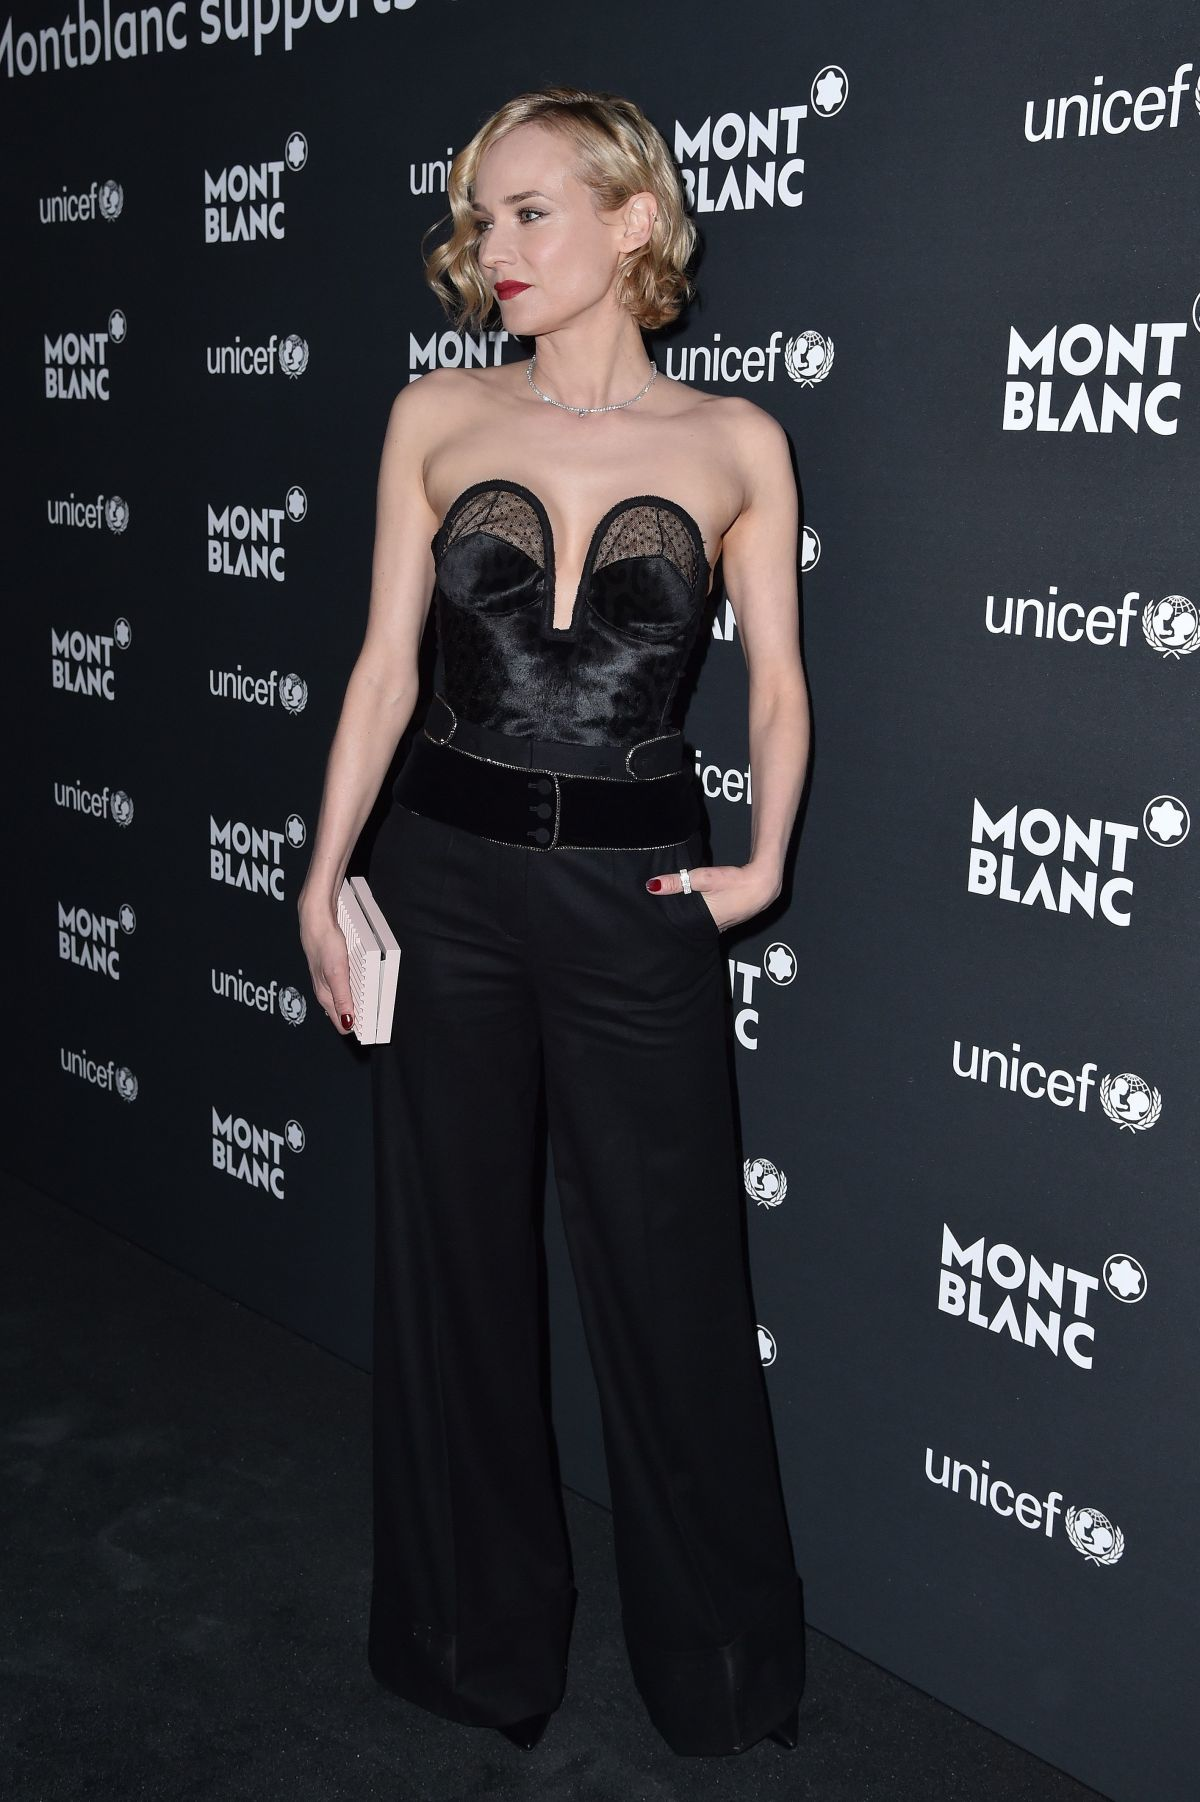 DIANE KRUGER at Montblanc for Unicef Collection Launch in New York 04/03/2017